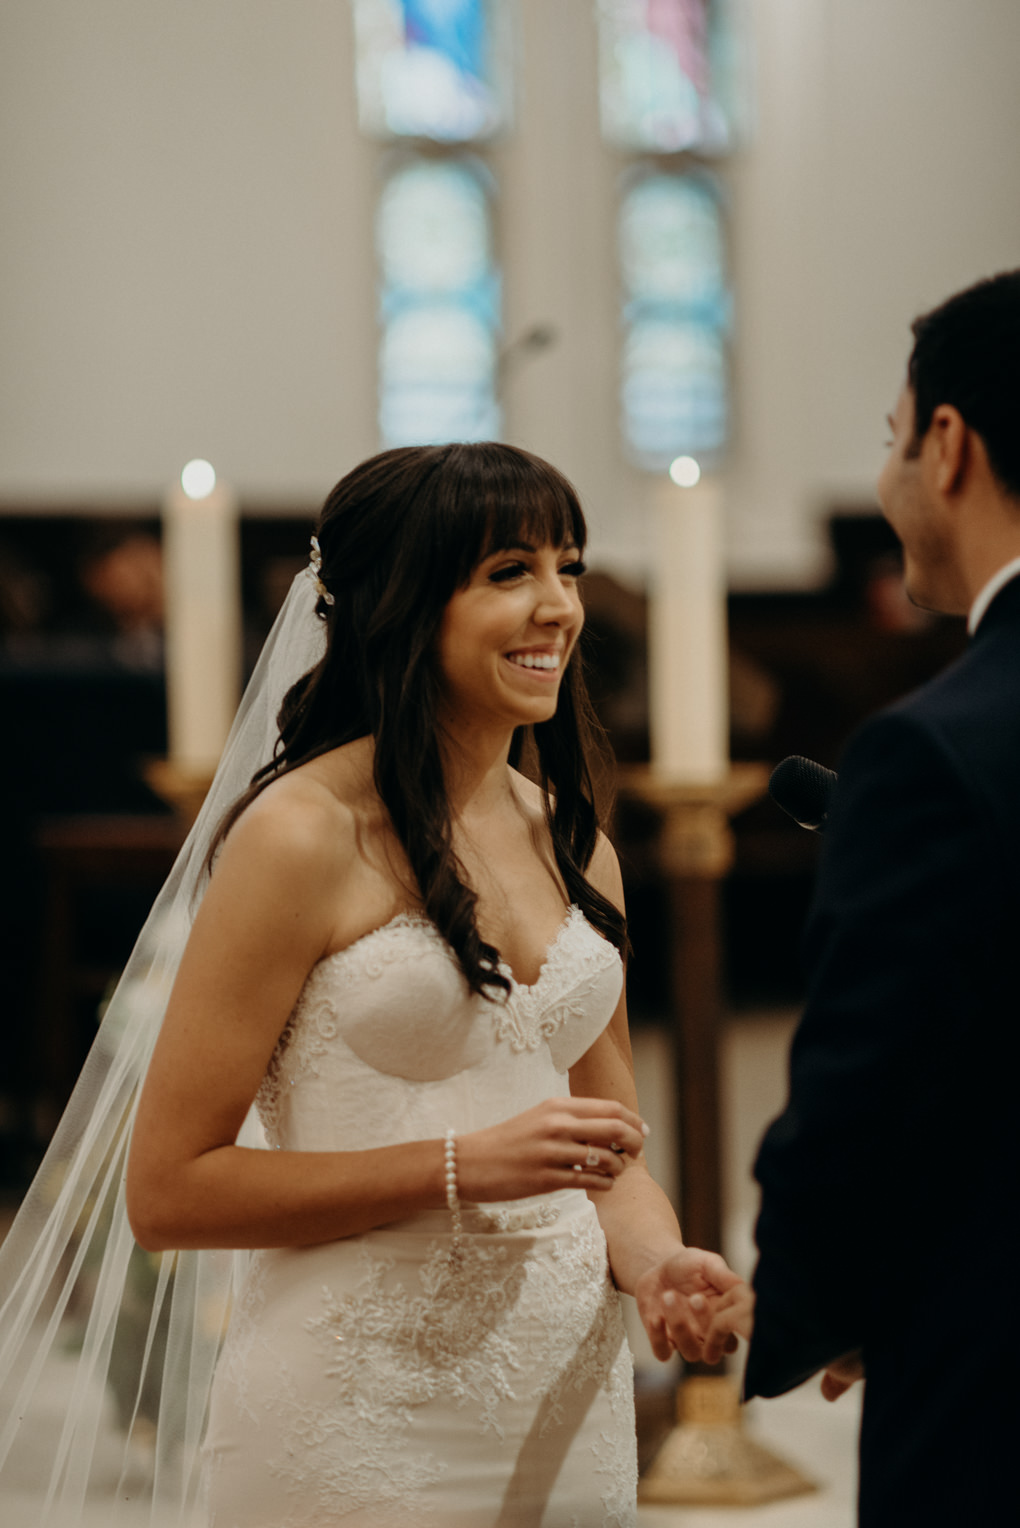 bride smiling while exchanging rings with groom